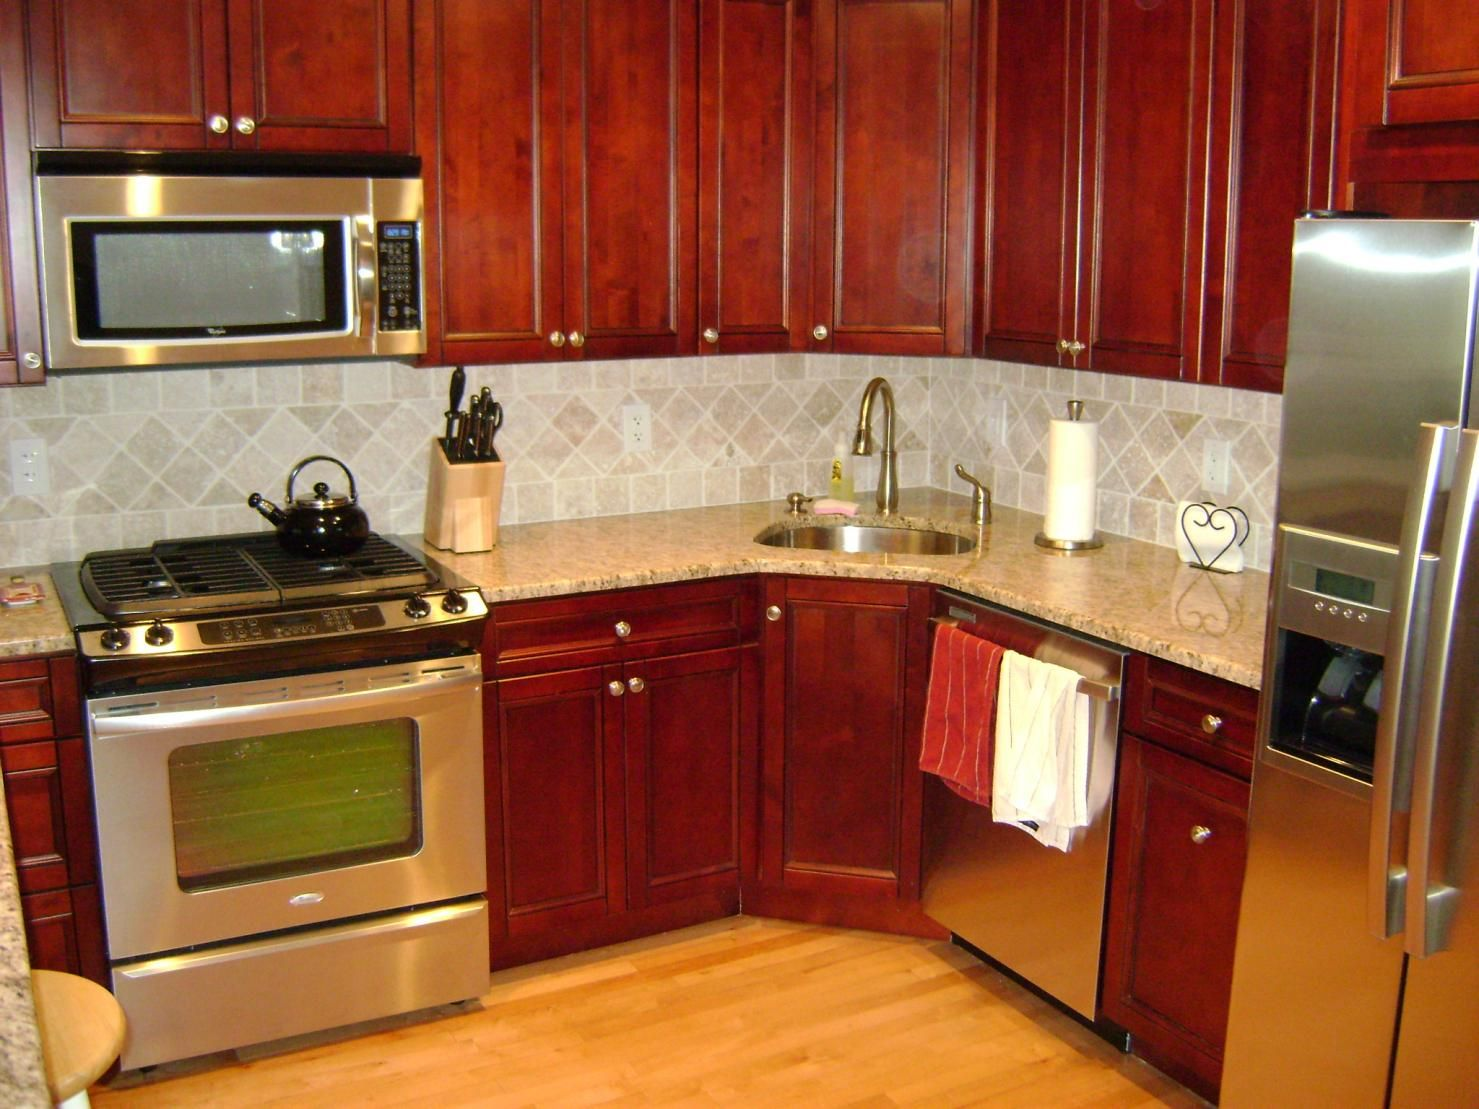 Small Kitchen Counter Ideas Small Kitchen Remodel Ideas Condo Remodel Pauls Kitchen